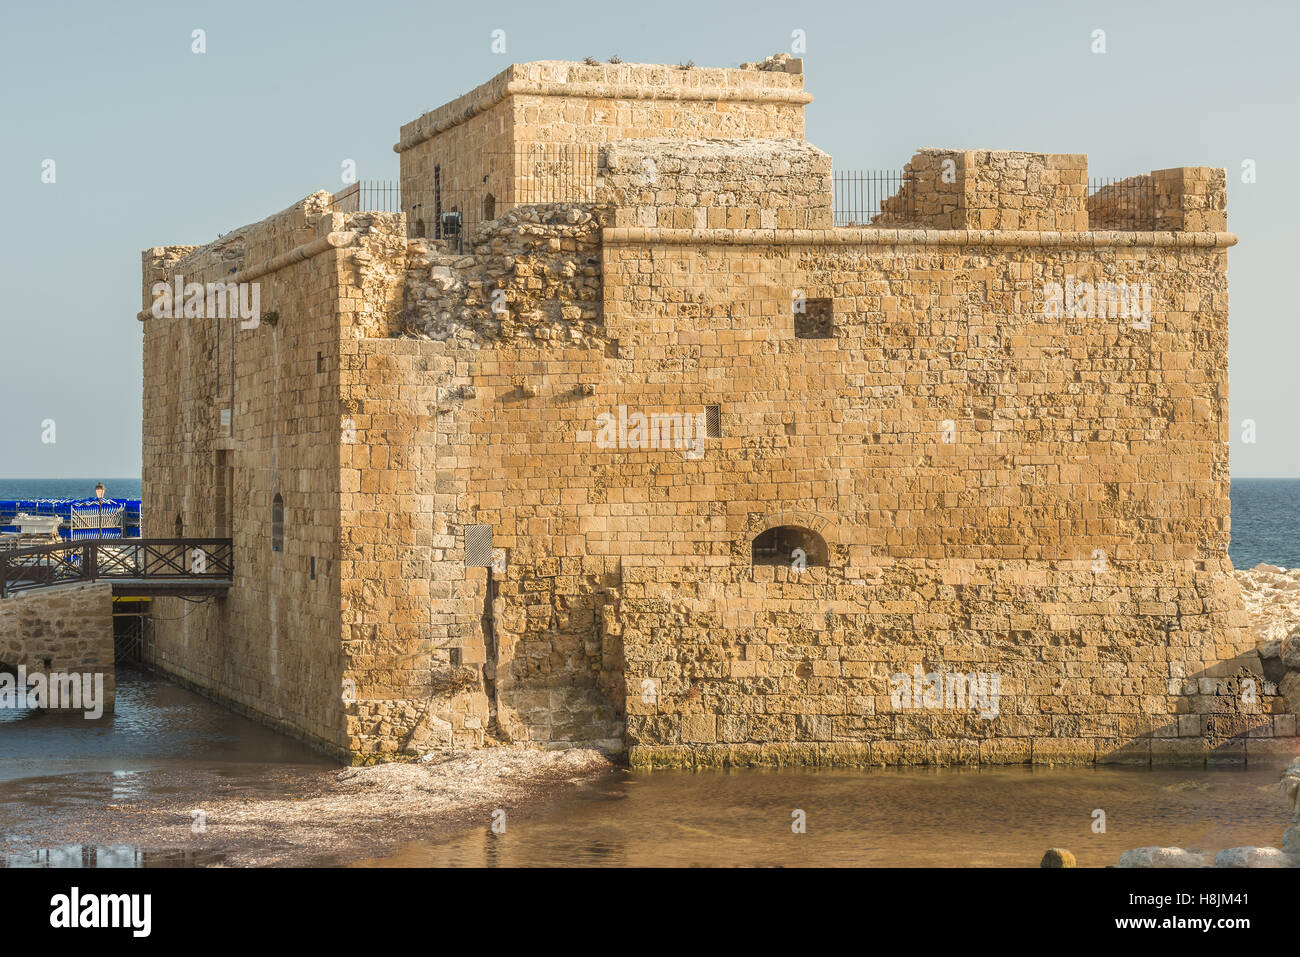 Port fort in Paphos, Cyprus. Stock Photo